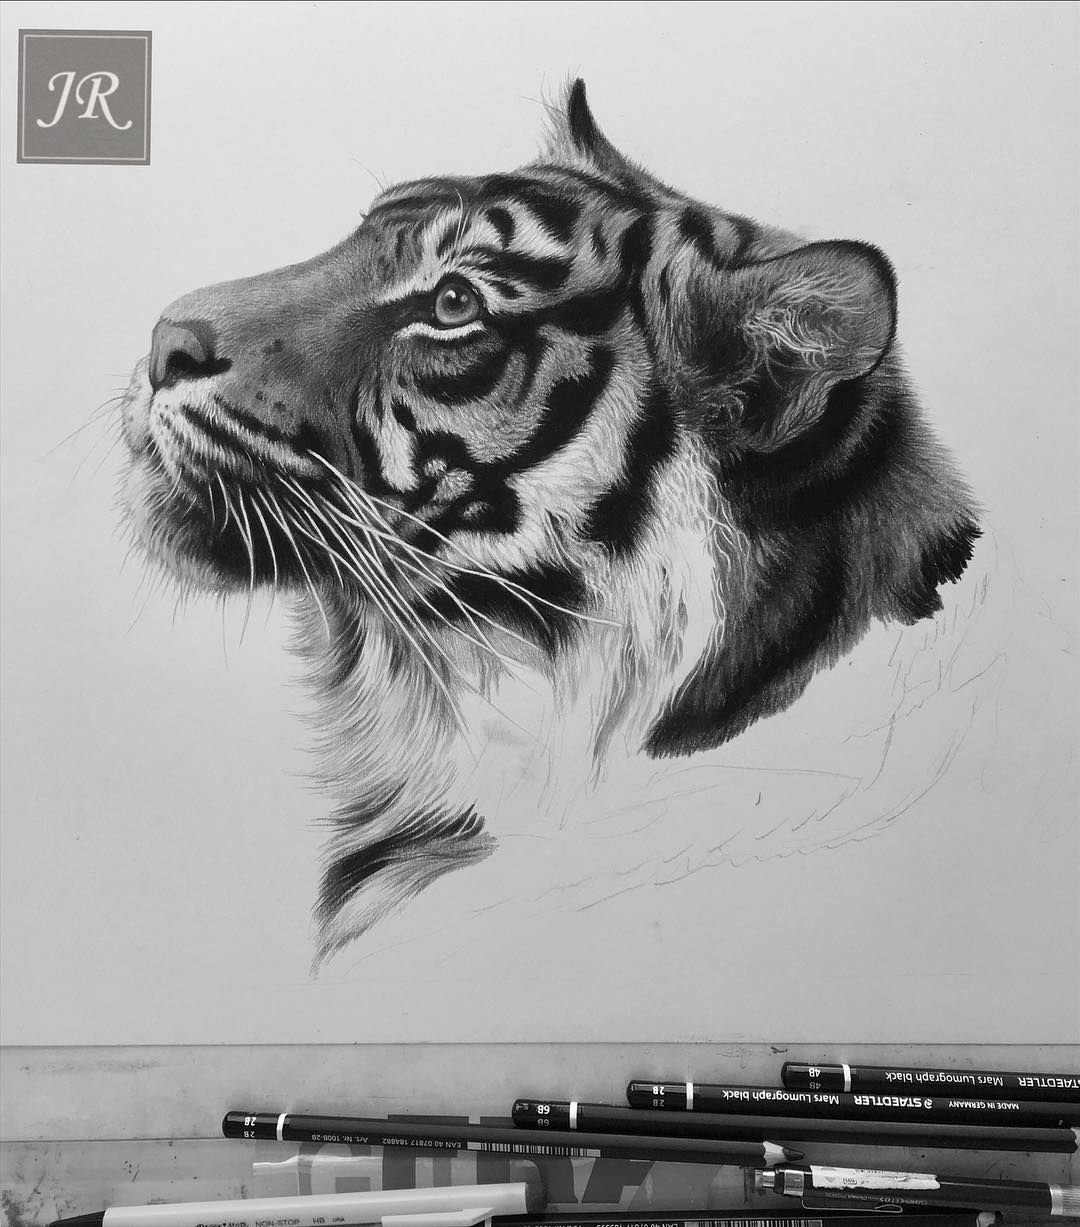 Tiger on the drawing board today! pencil drawing on Strathmore board